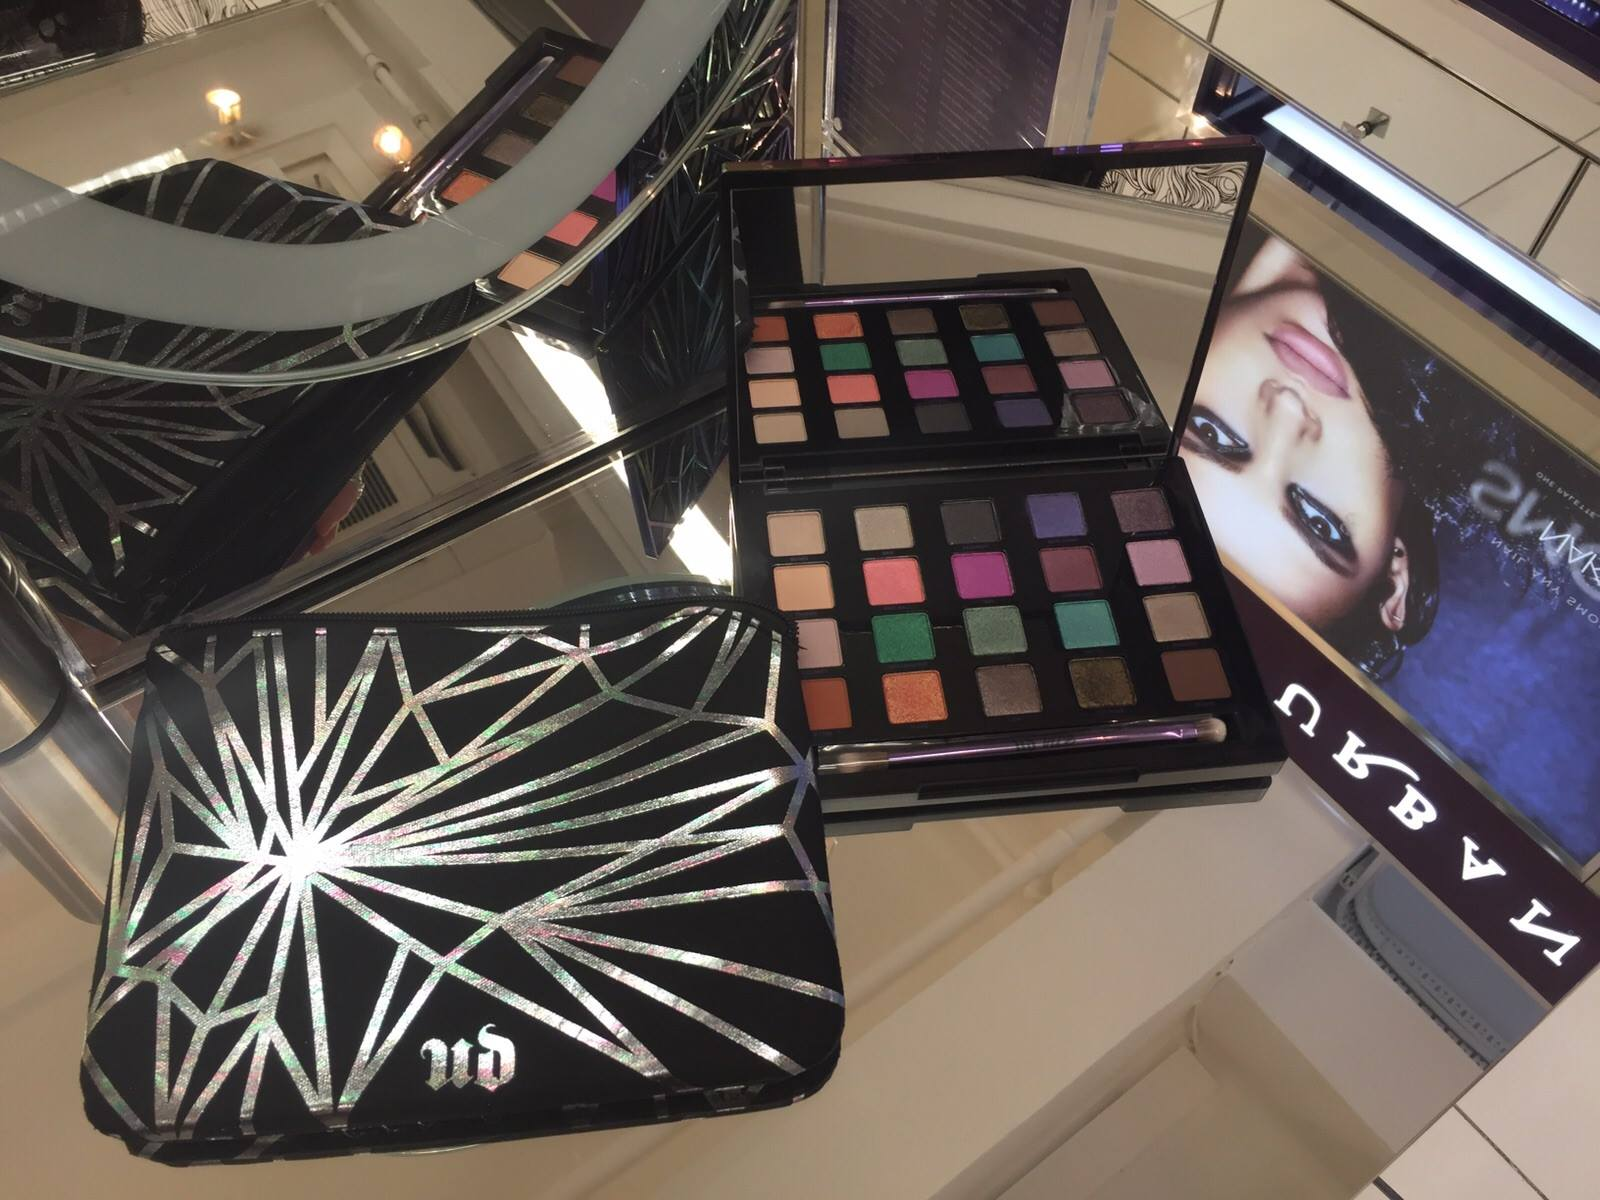 Vice 4 by Urban Decay